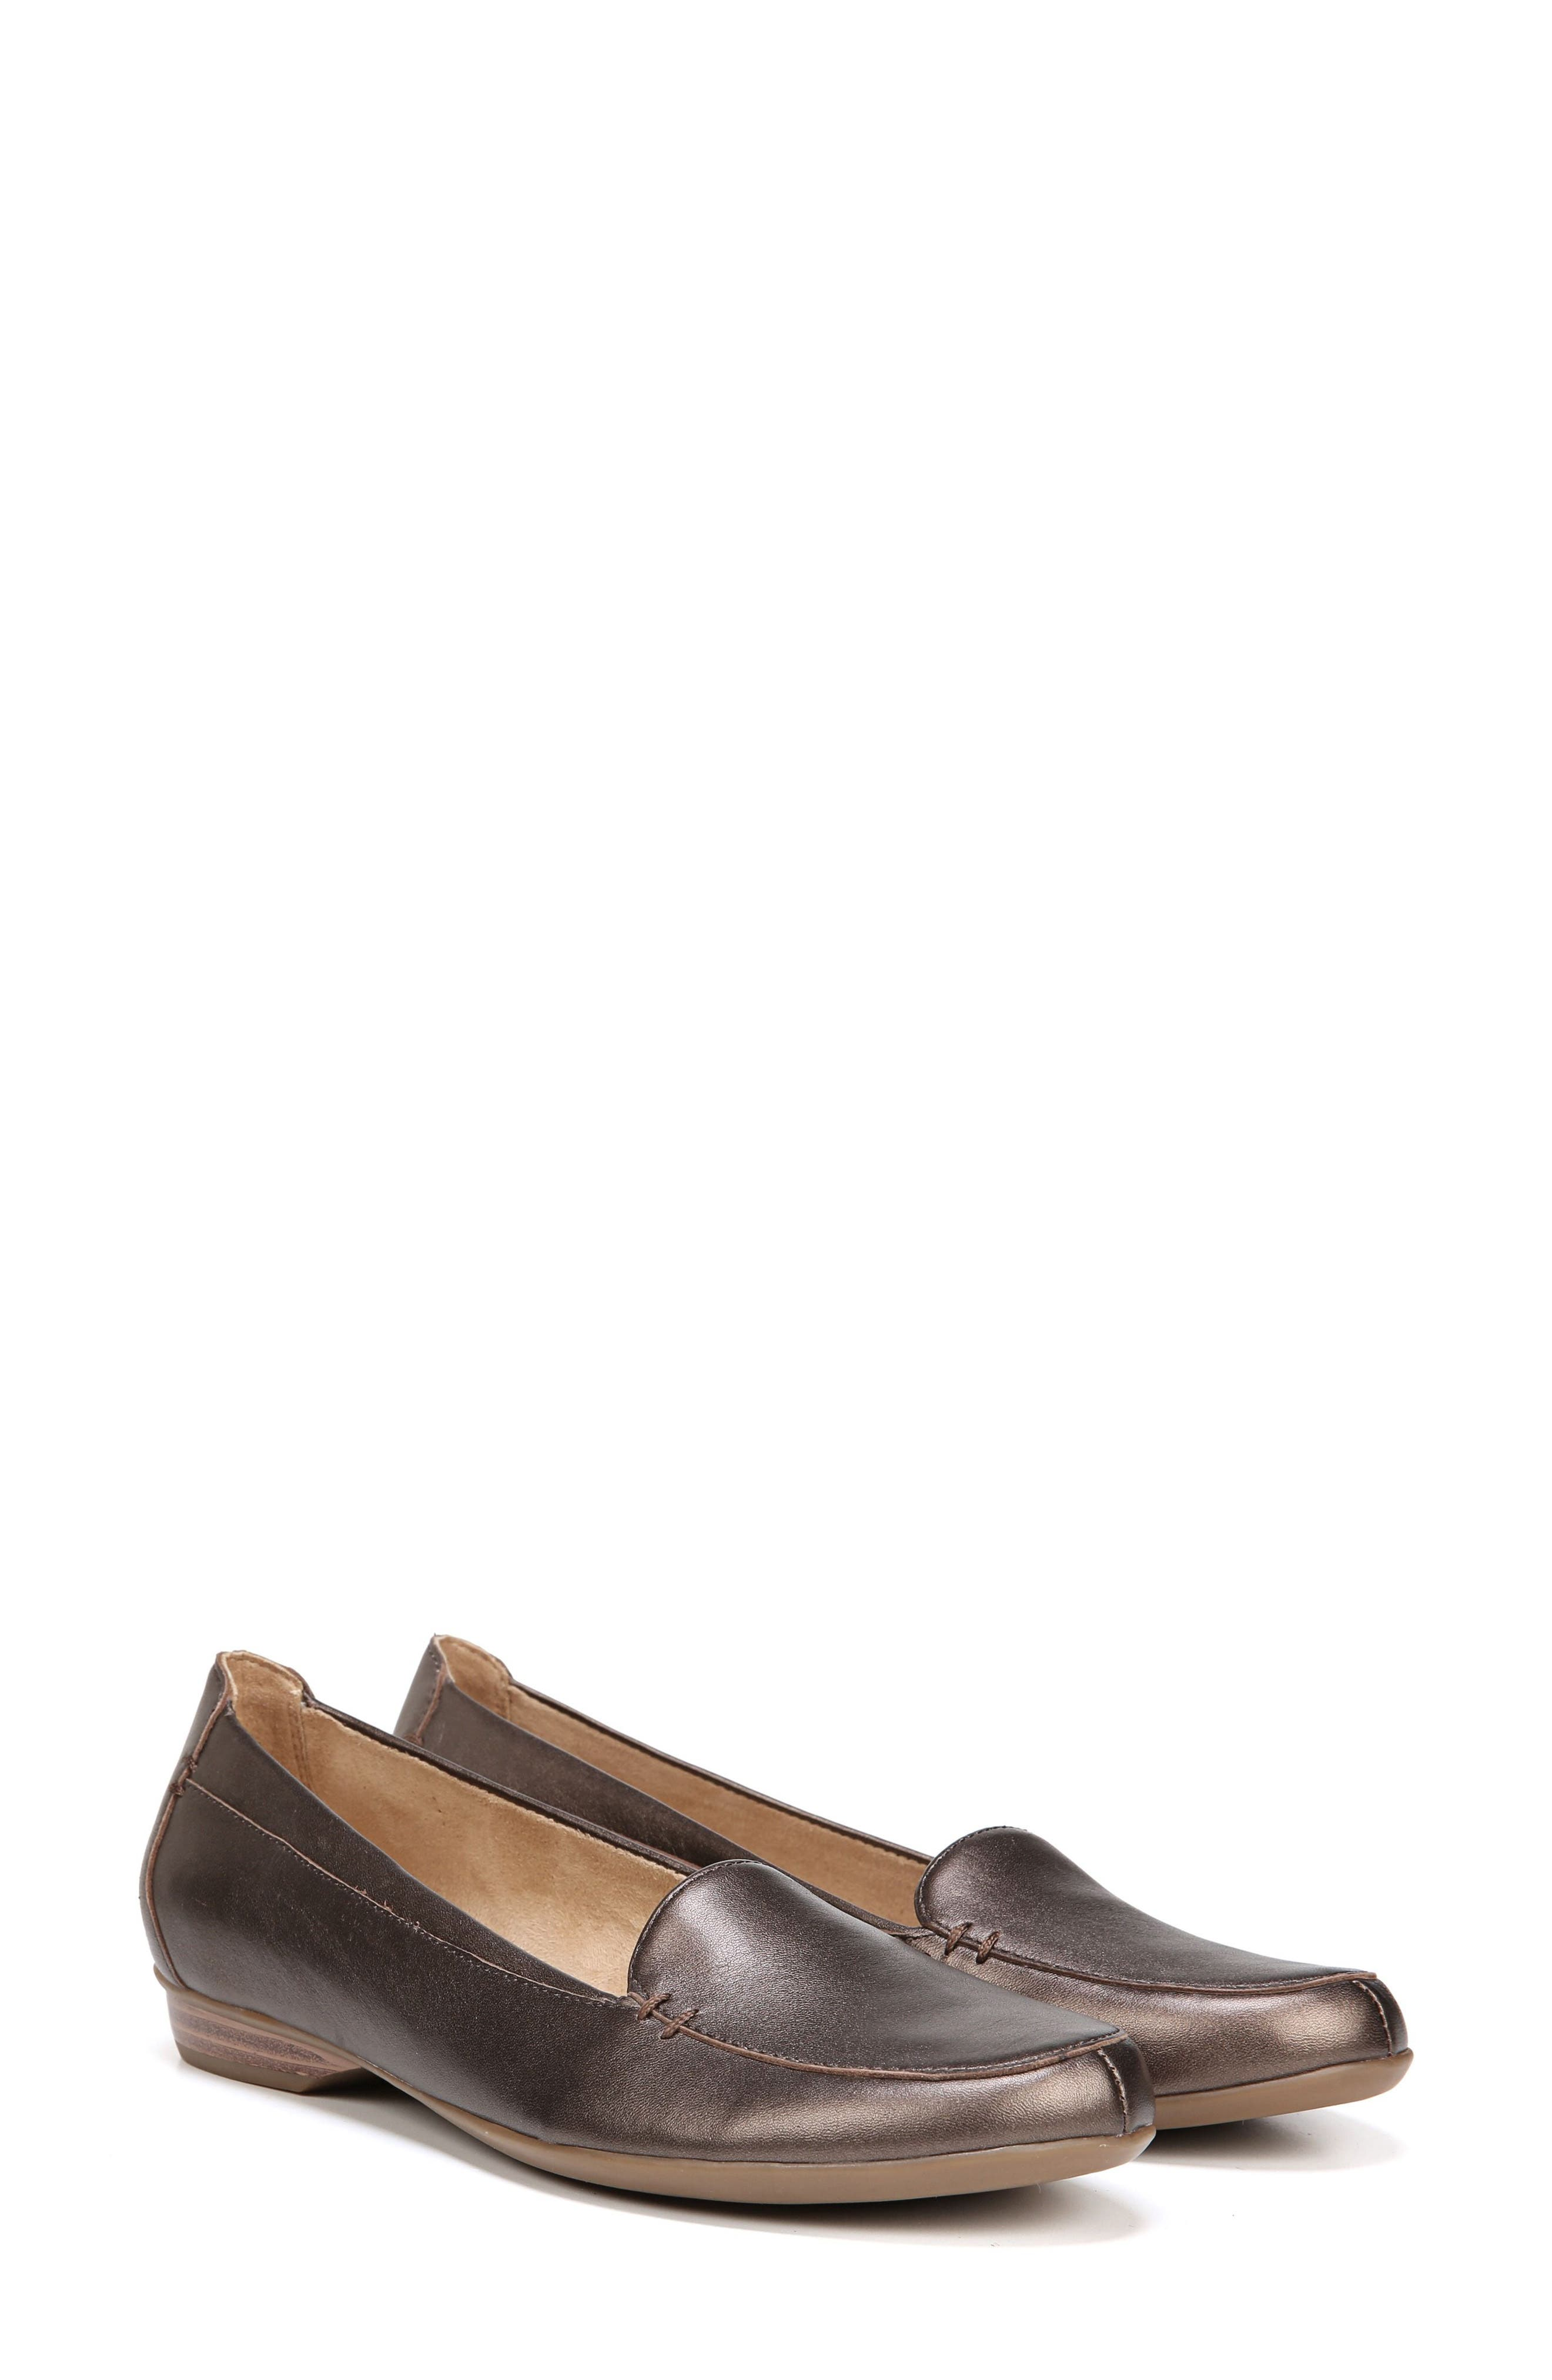 'Saban' Leather Loafer,                             Alternate thumbnail 8, color,                             BROWN BRONZE LEATHER